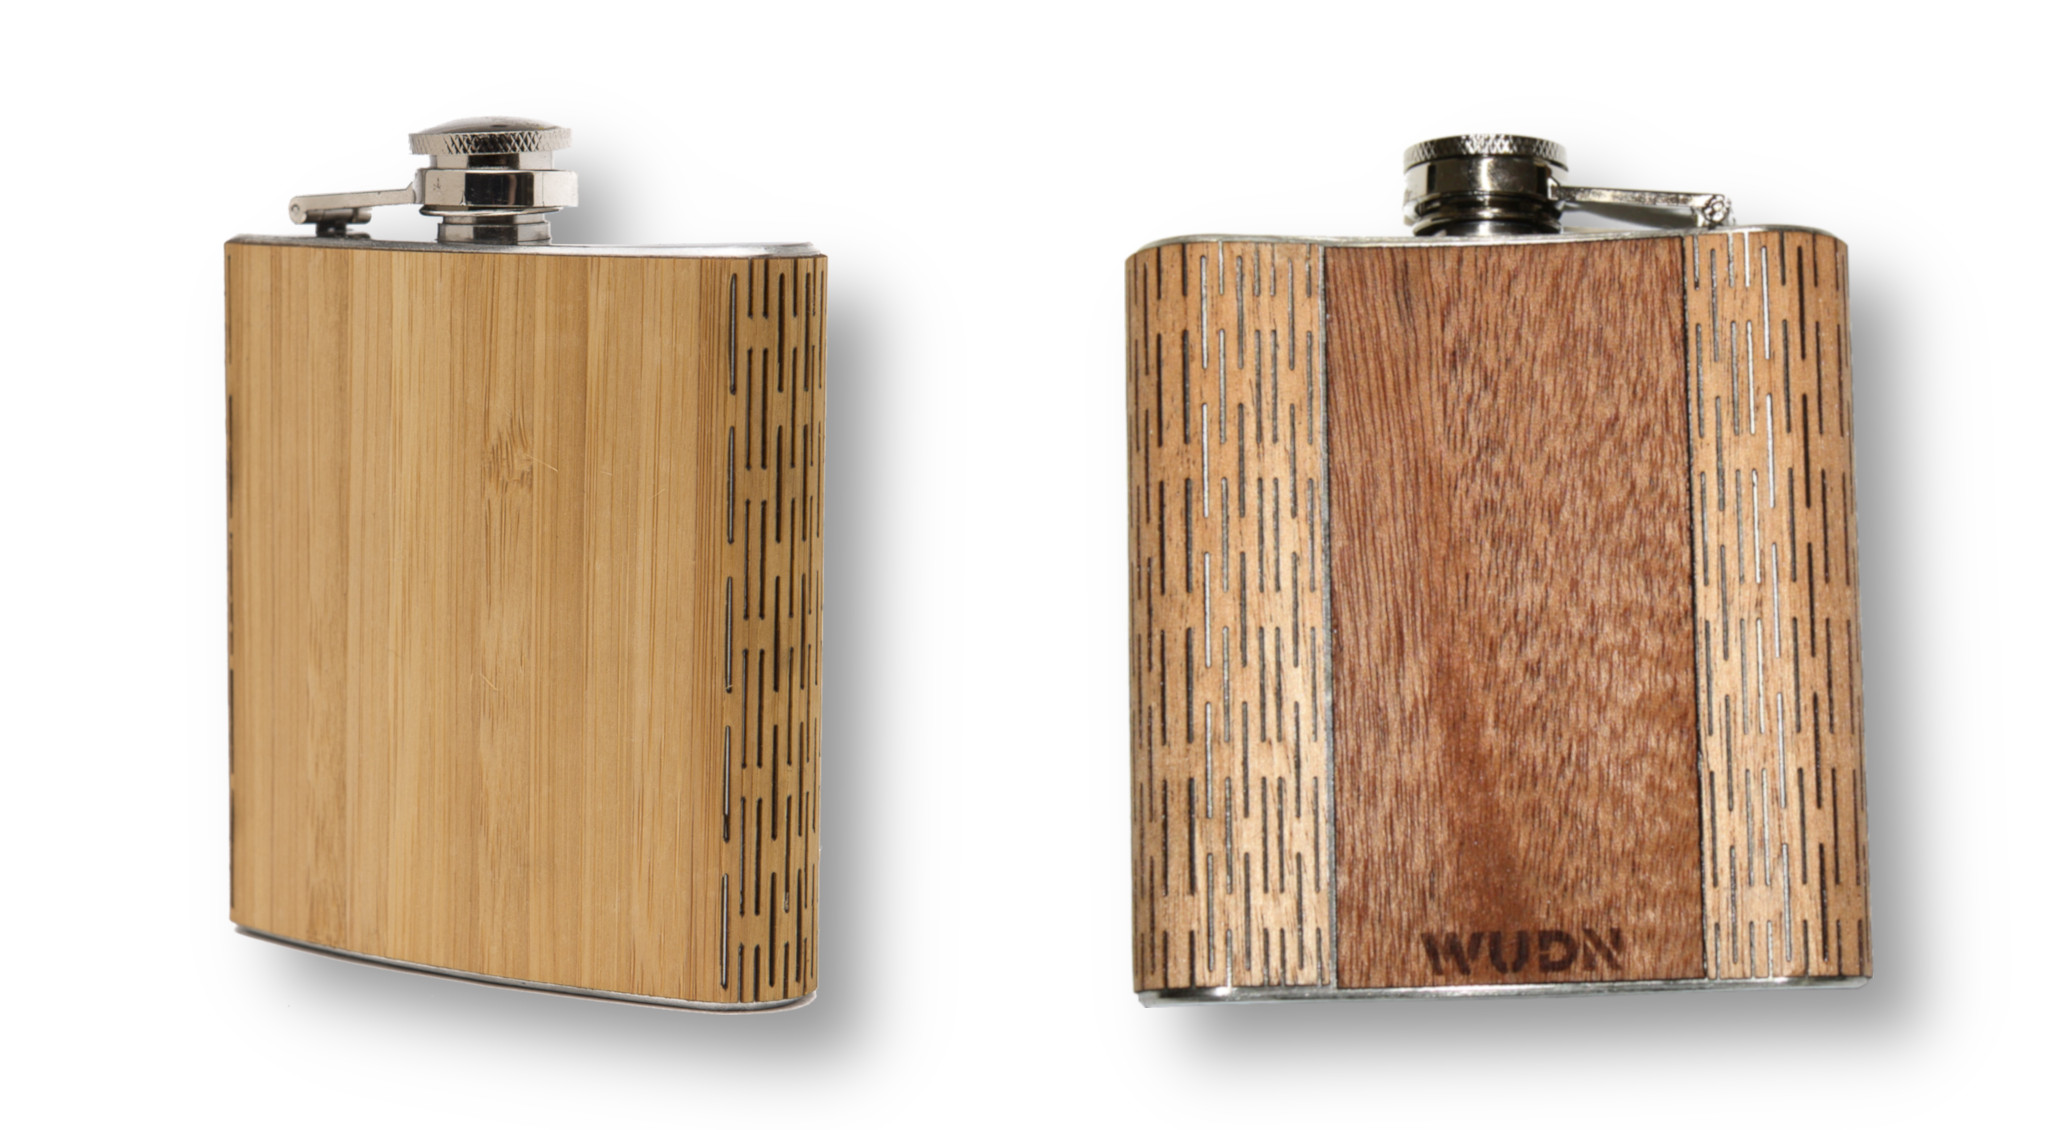 Living hinge in wood on a 6oz hip flask